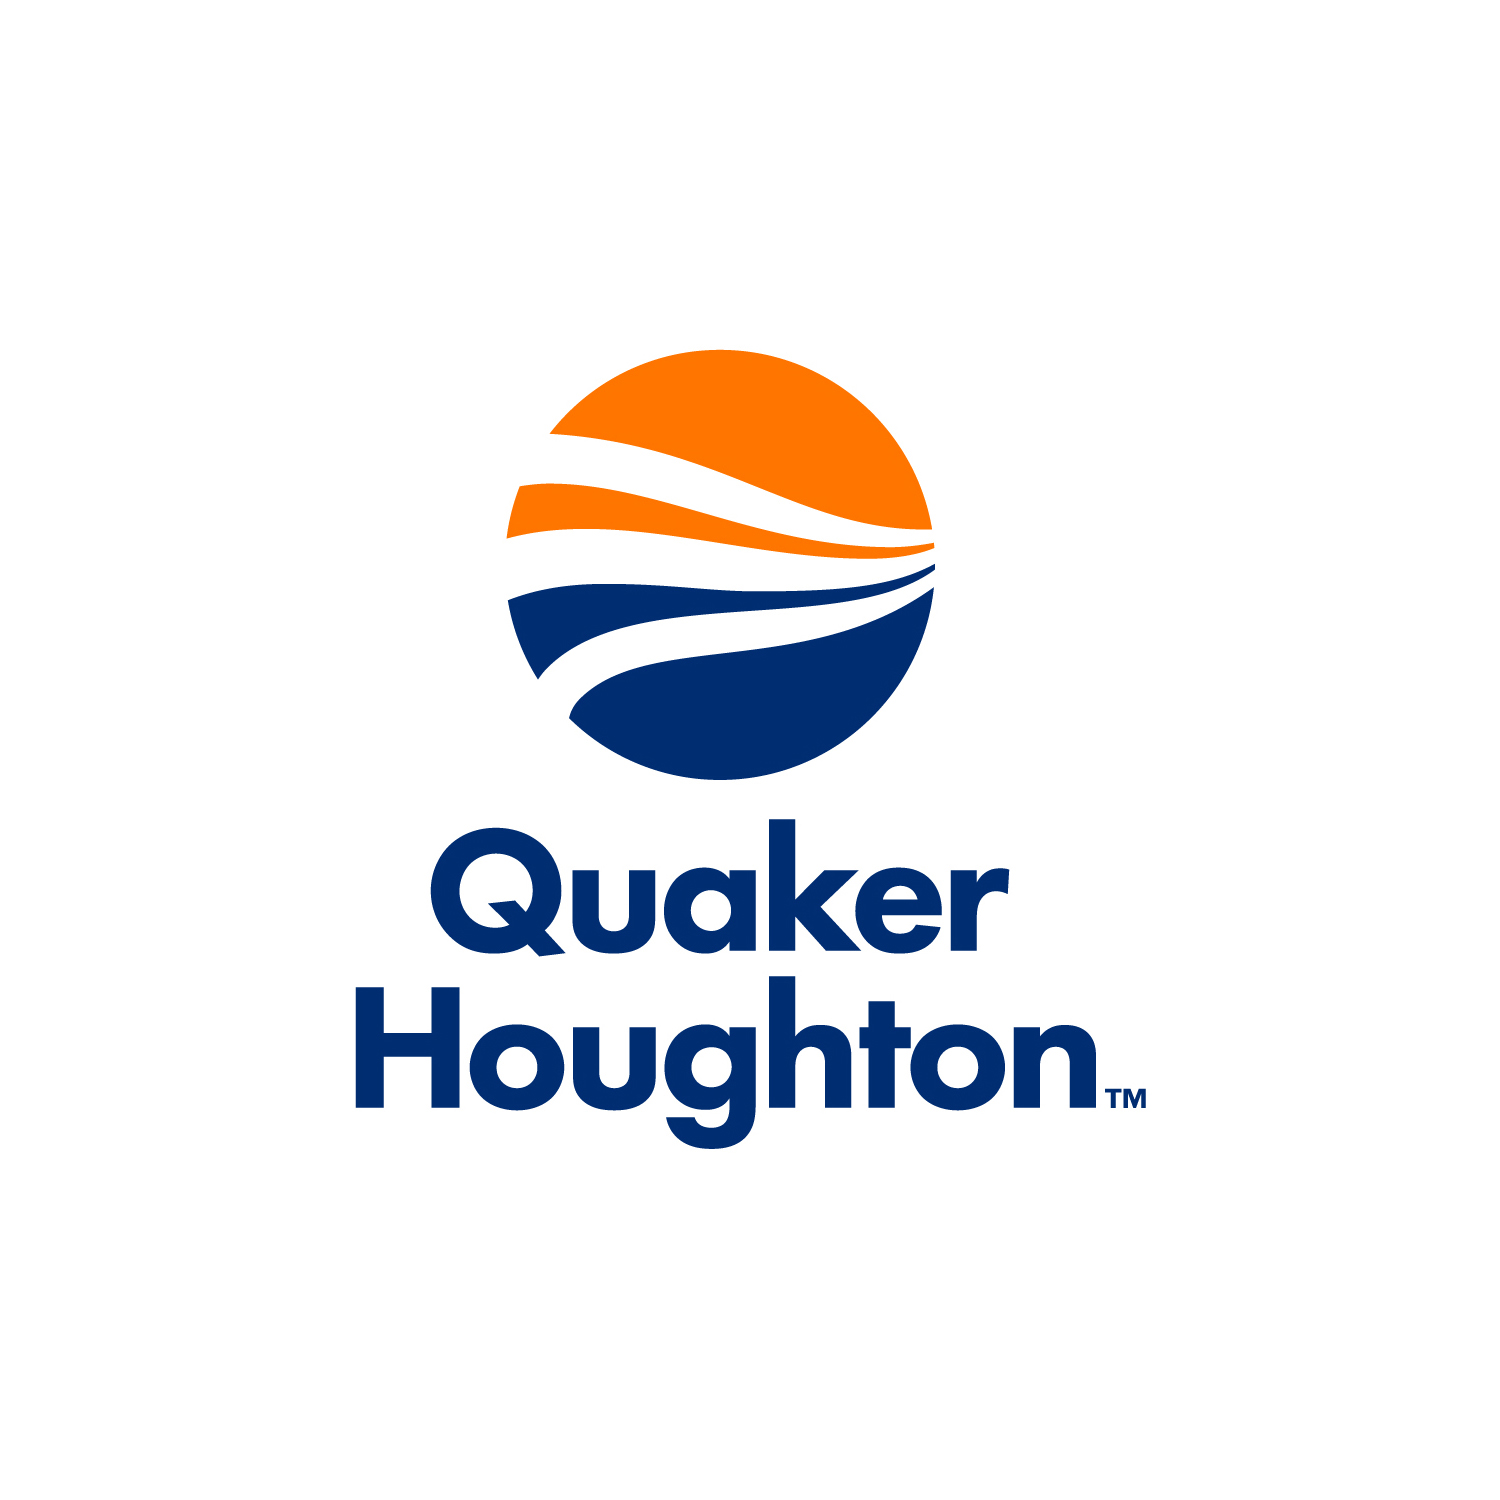 Quaker_houghton_square